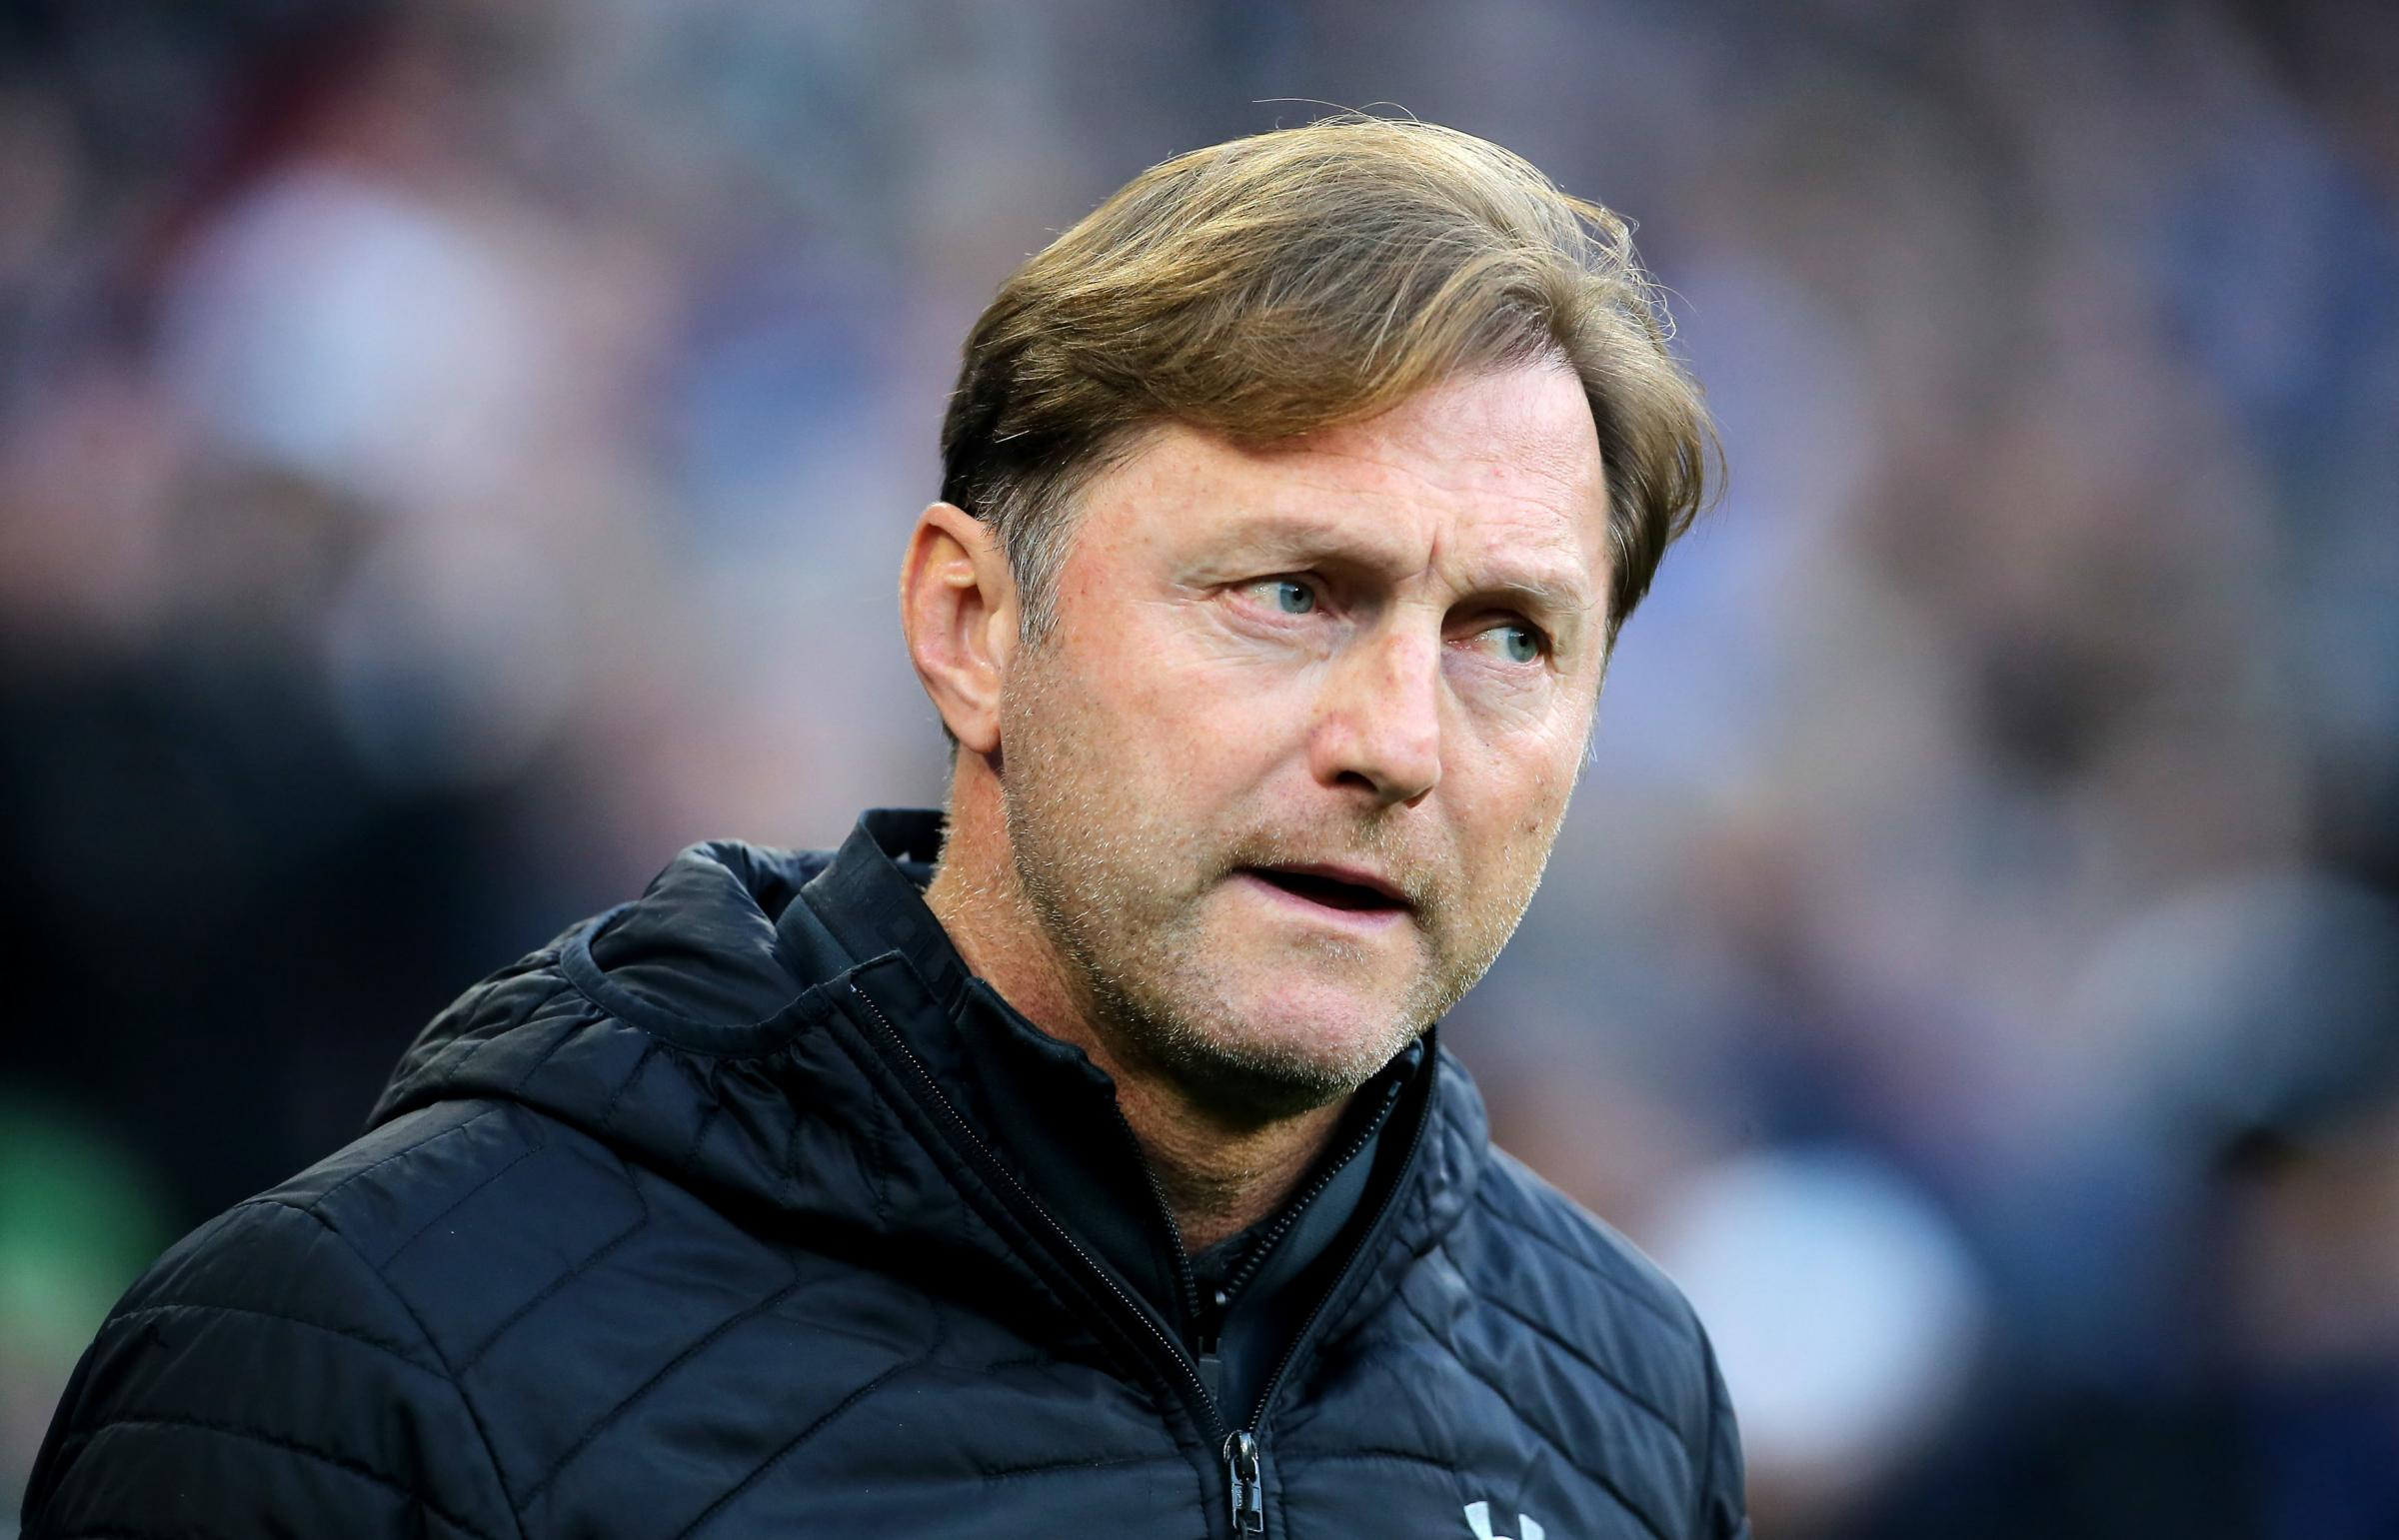 THE VERDICT: All doubts removed for Hasenhuttl